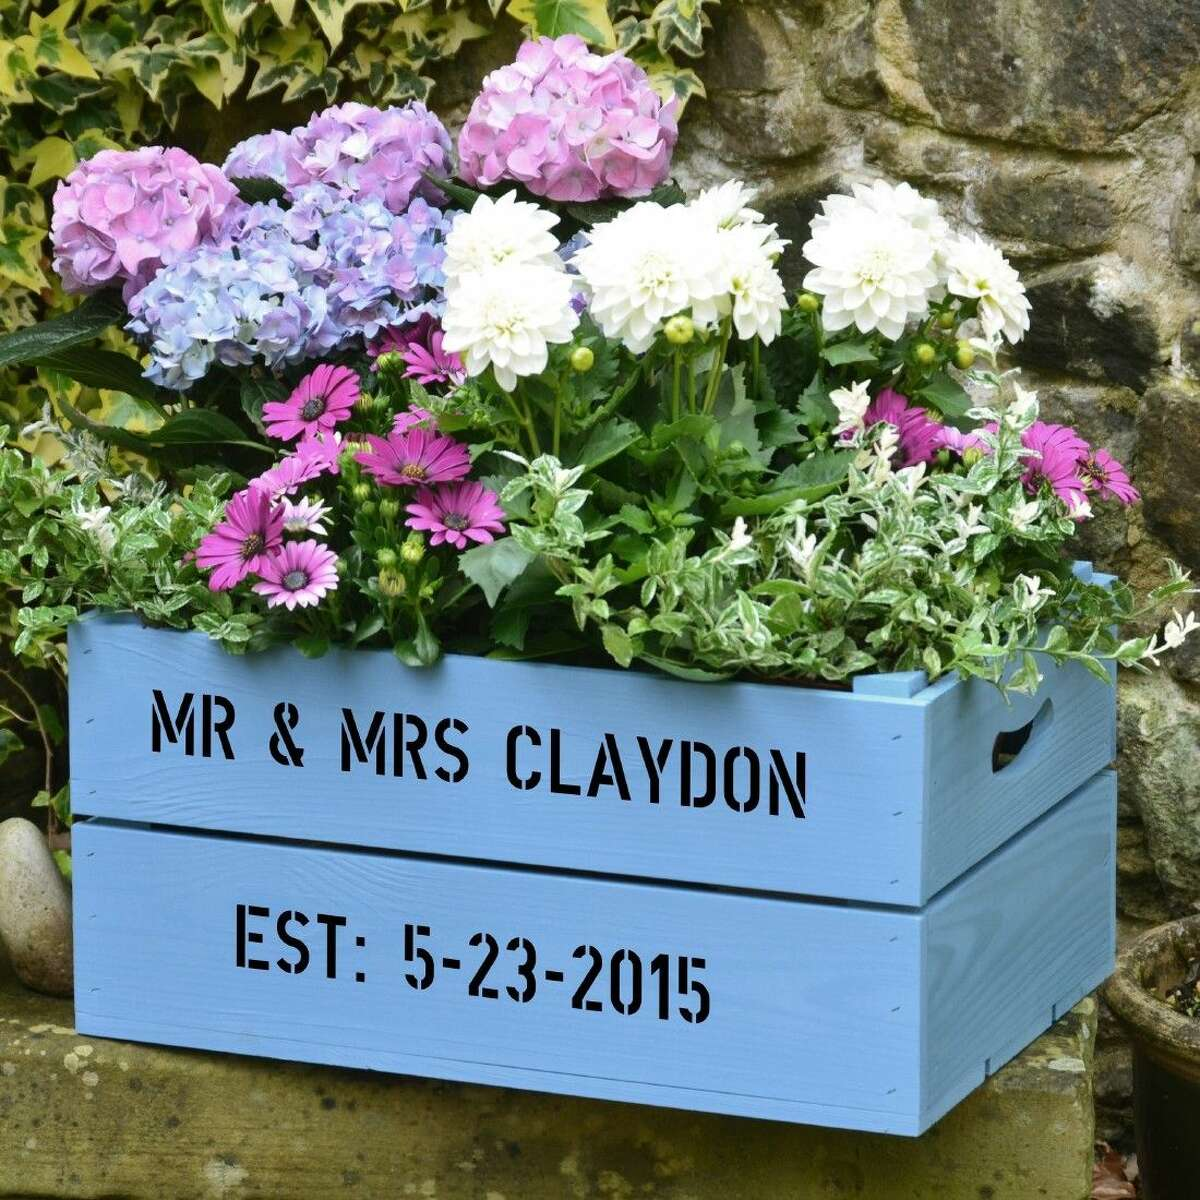 Crates, recycled or purchased, can be painted and personalized to create a colorful, unique planter for flowers and edibles. Photo credit: courtesy of PersonalizedCrates.com